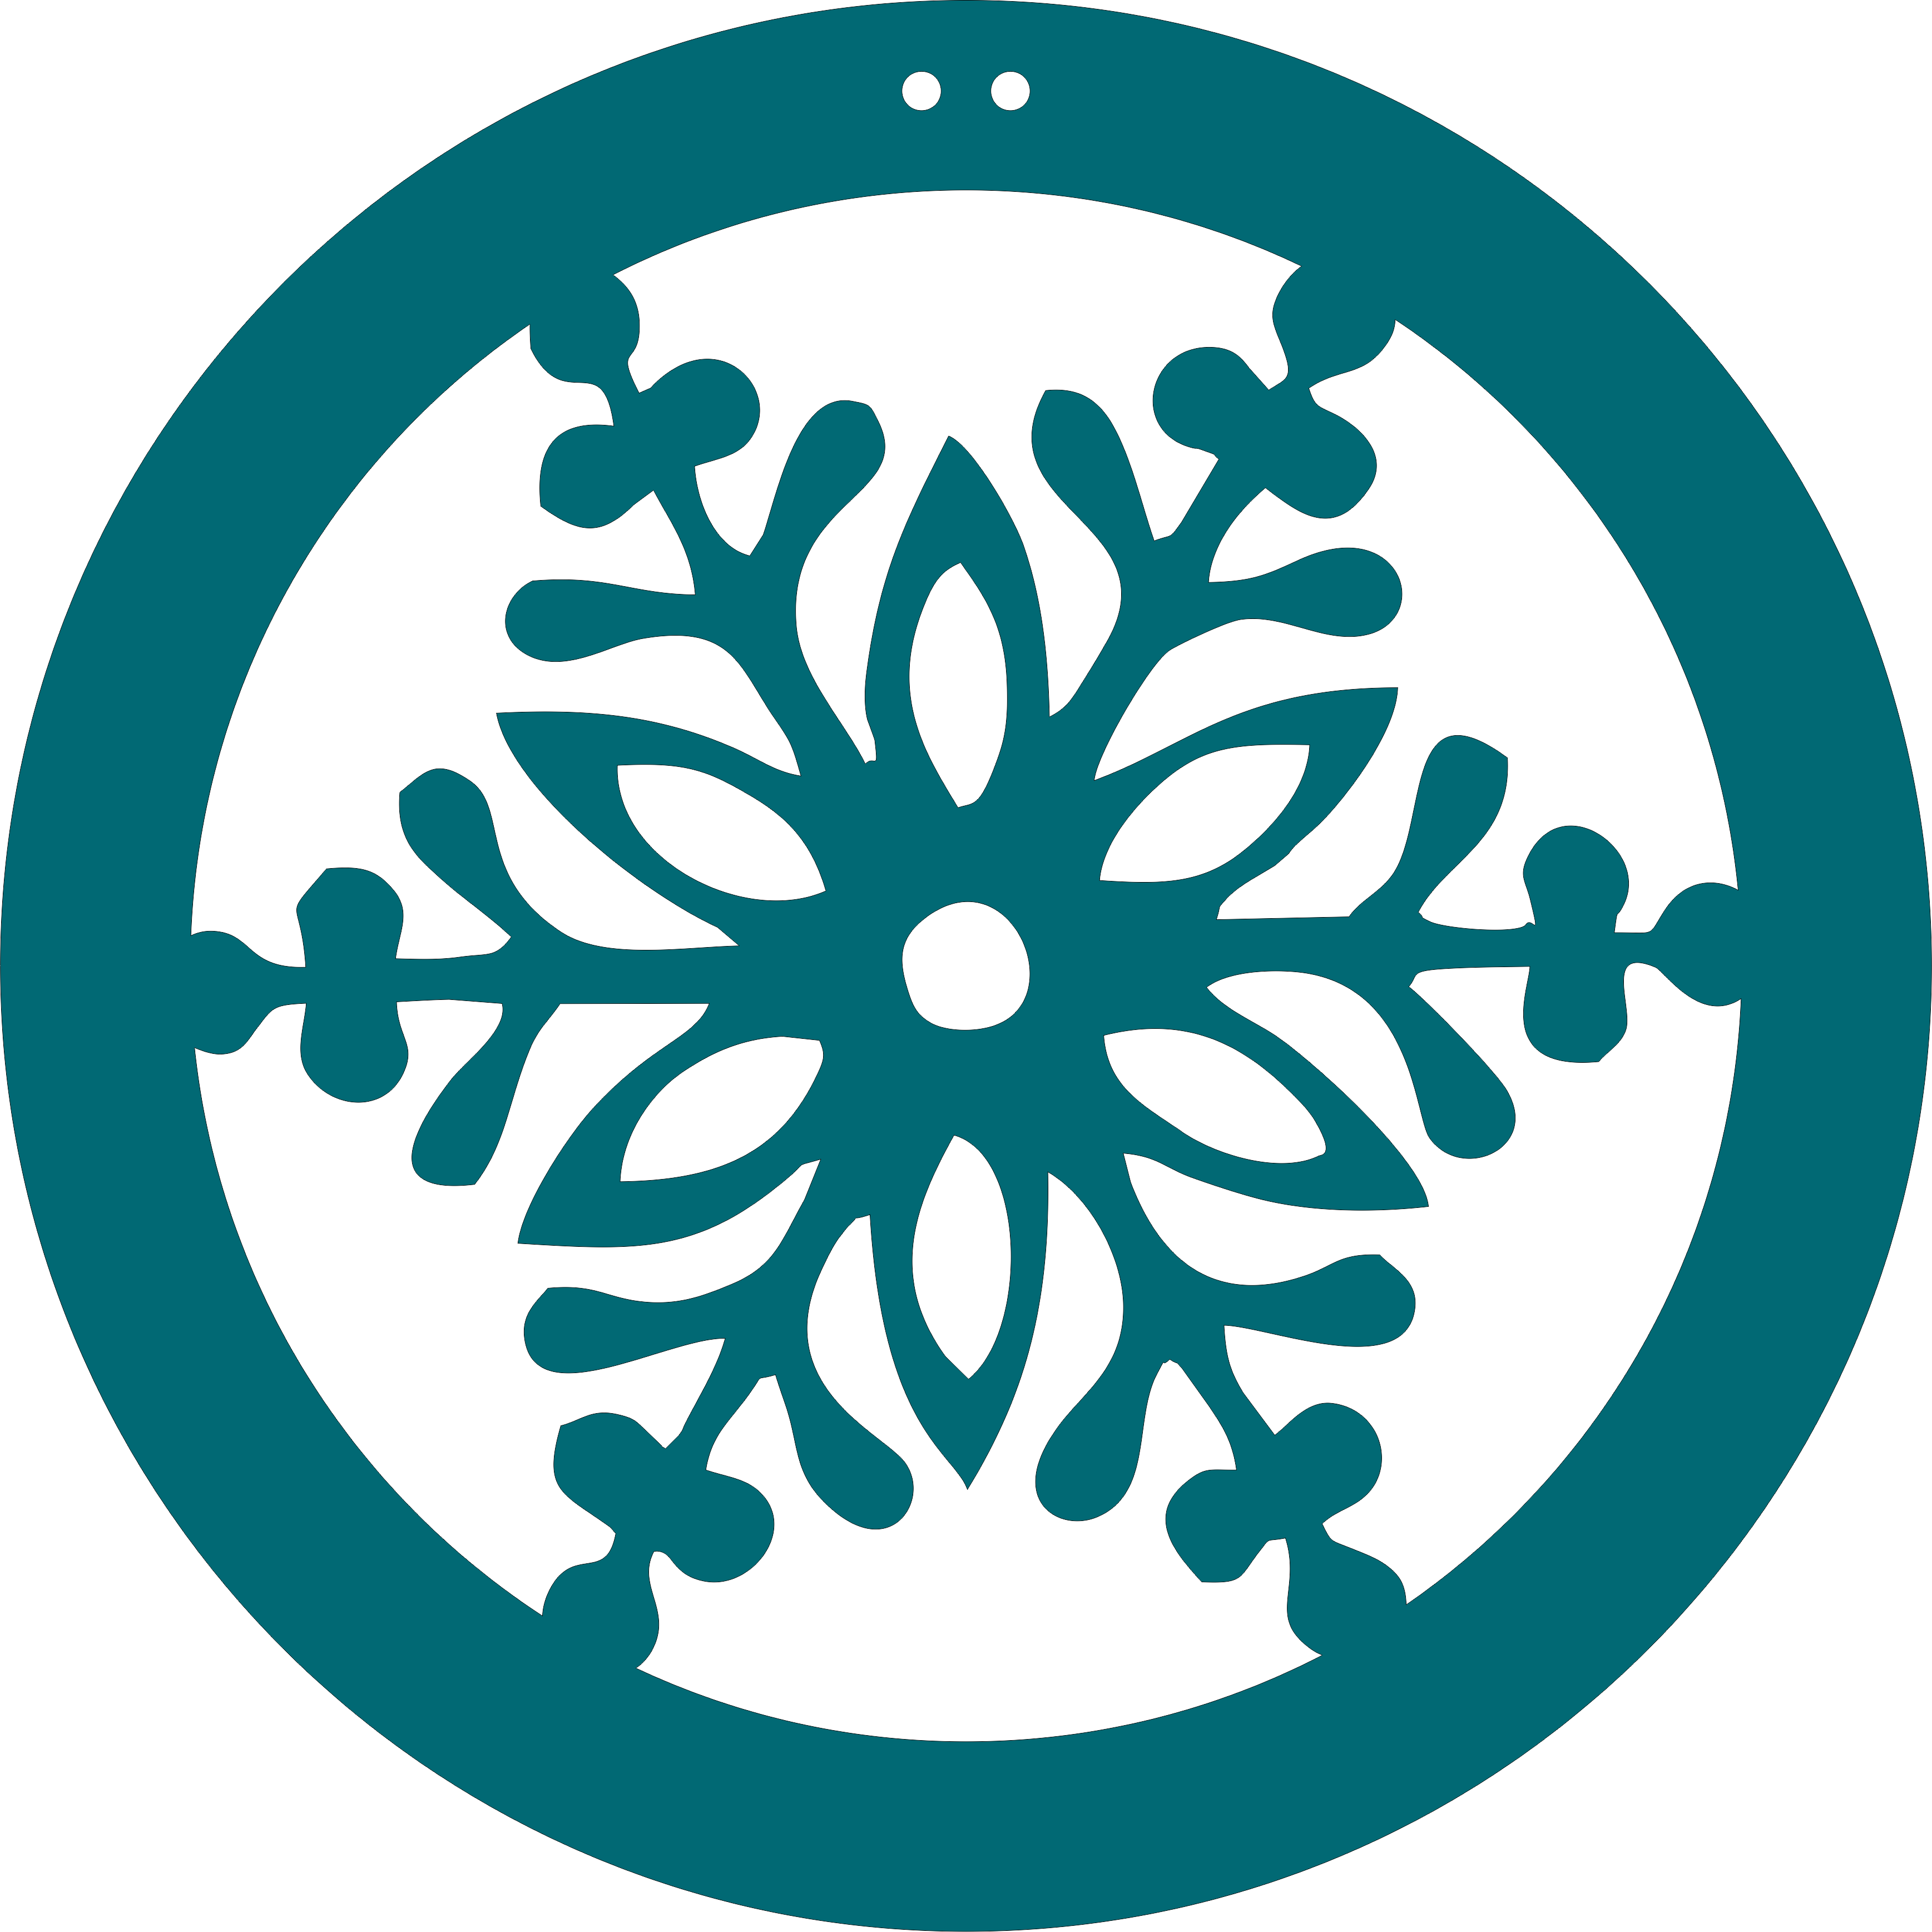 Snowflake circle clipart picture black and white download Snowflake   Innotations picture black and white download